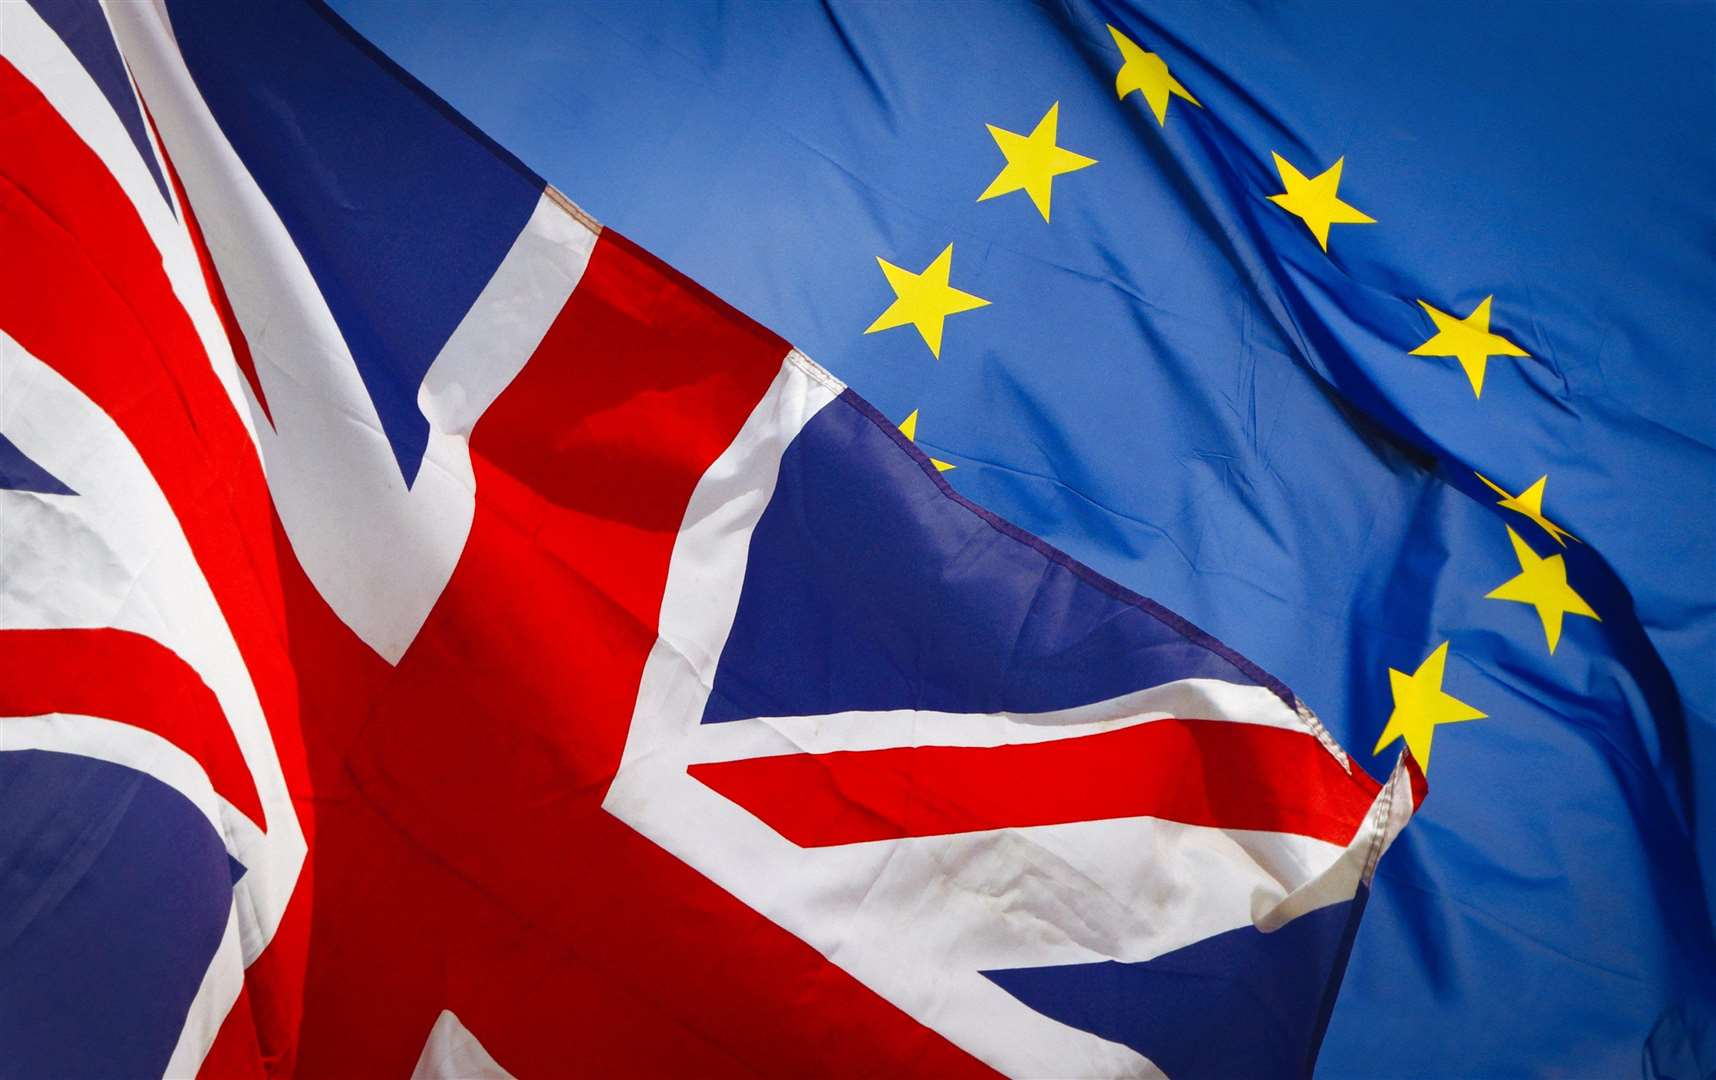 Law firm's Brexit Barometer gives on-going insight into business views on the split